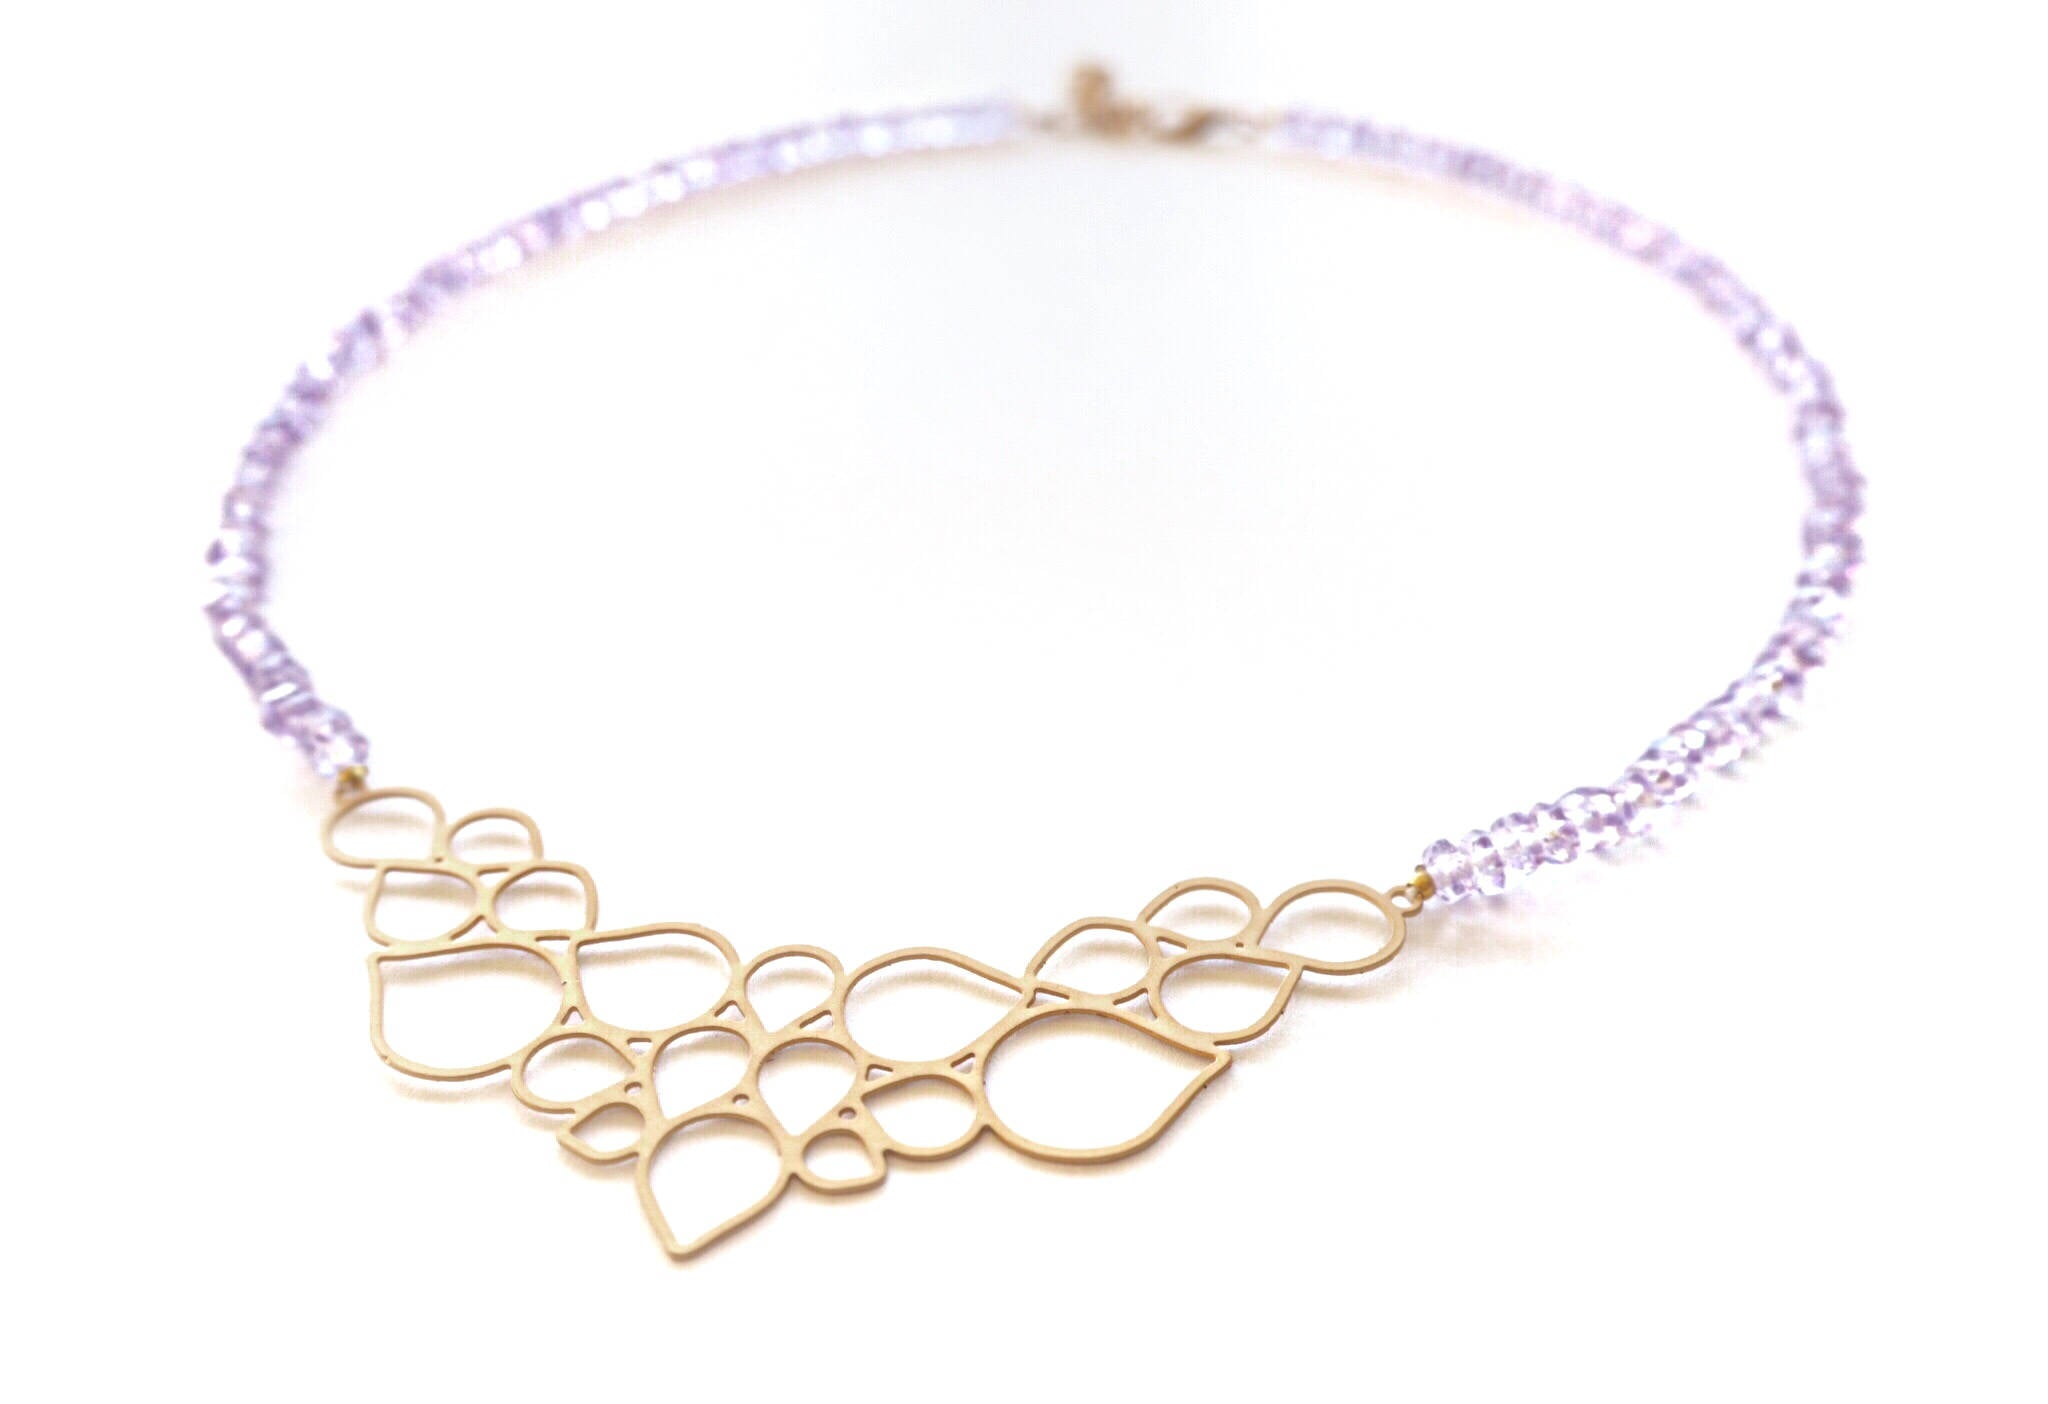 Amethyst quartz AA rondelles and boheme golden center necklace